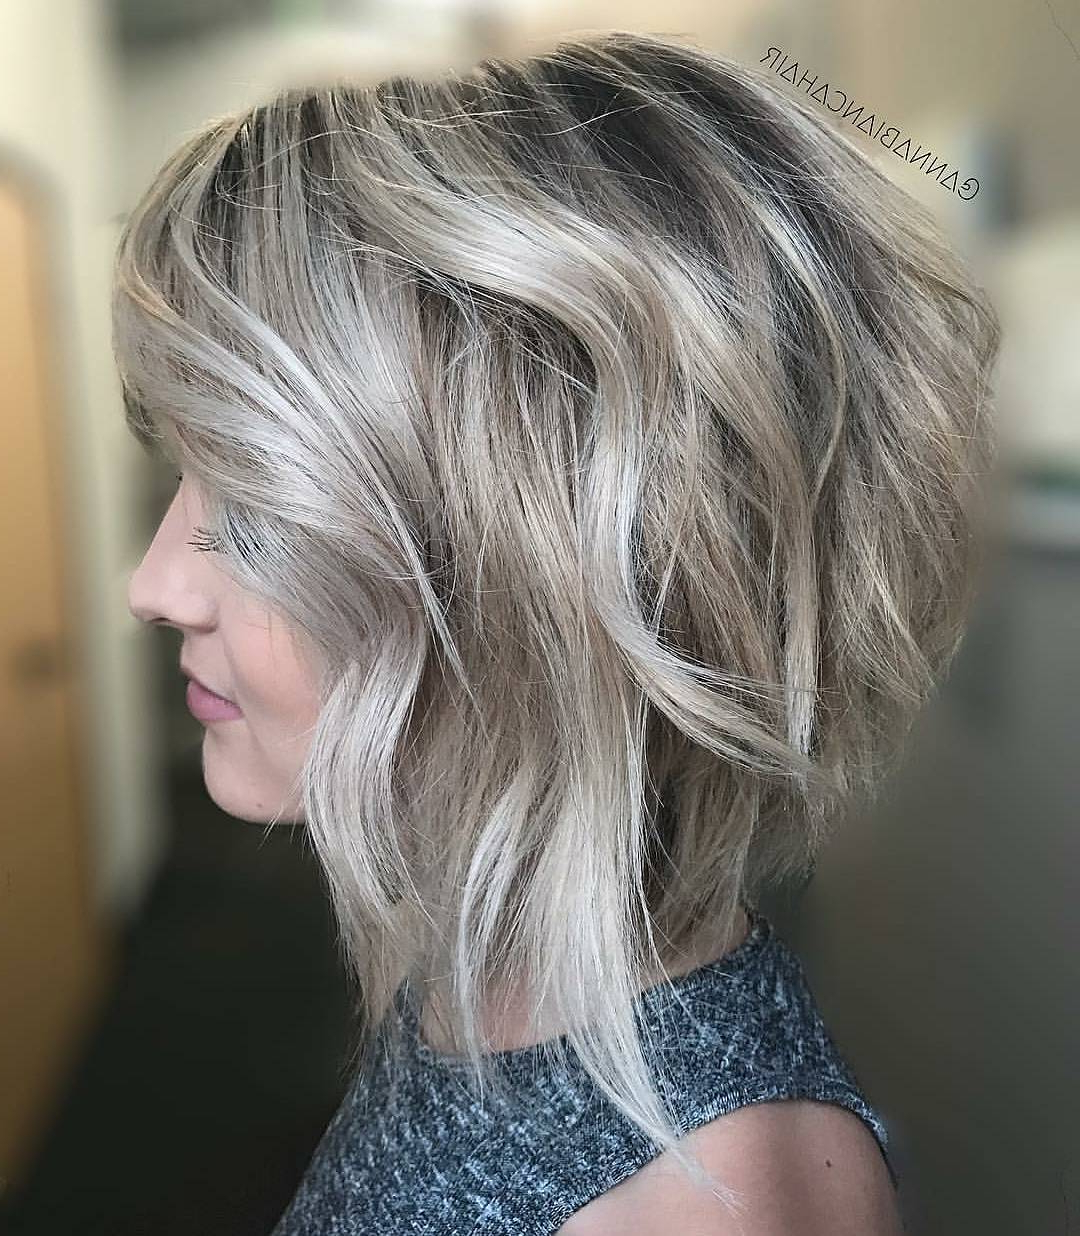 10 Stylish Medium Bob Haircuts For Women – Easy Care Chic Bob Hair 2019 Intended For Extreme Angled Bob Haircuts With Pink Peek A Boos (View 1 of 20)